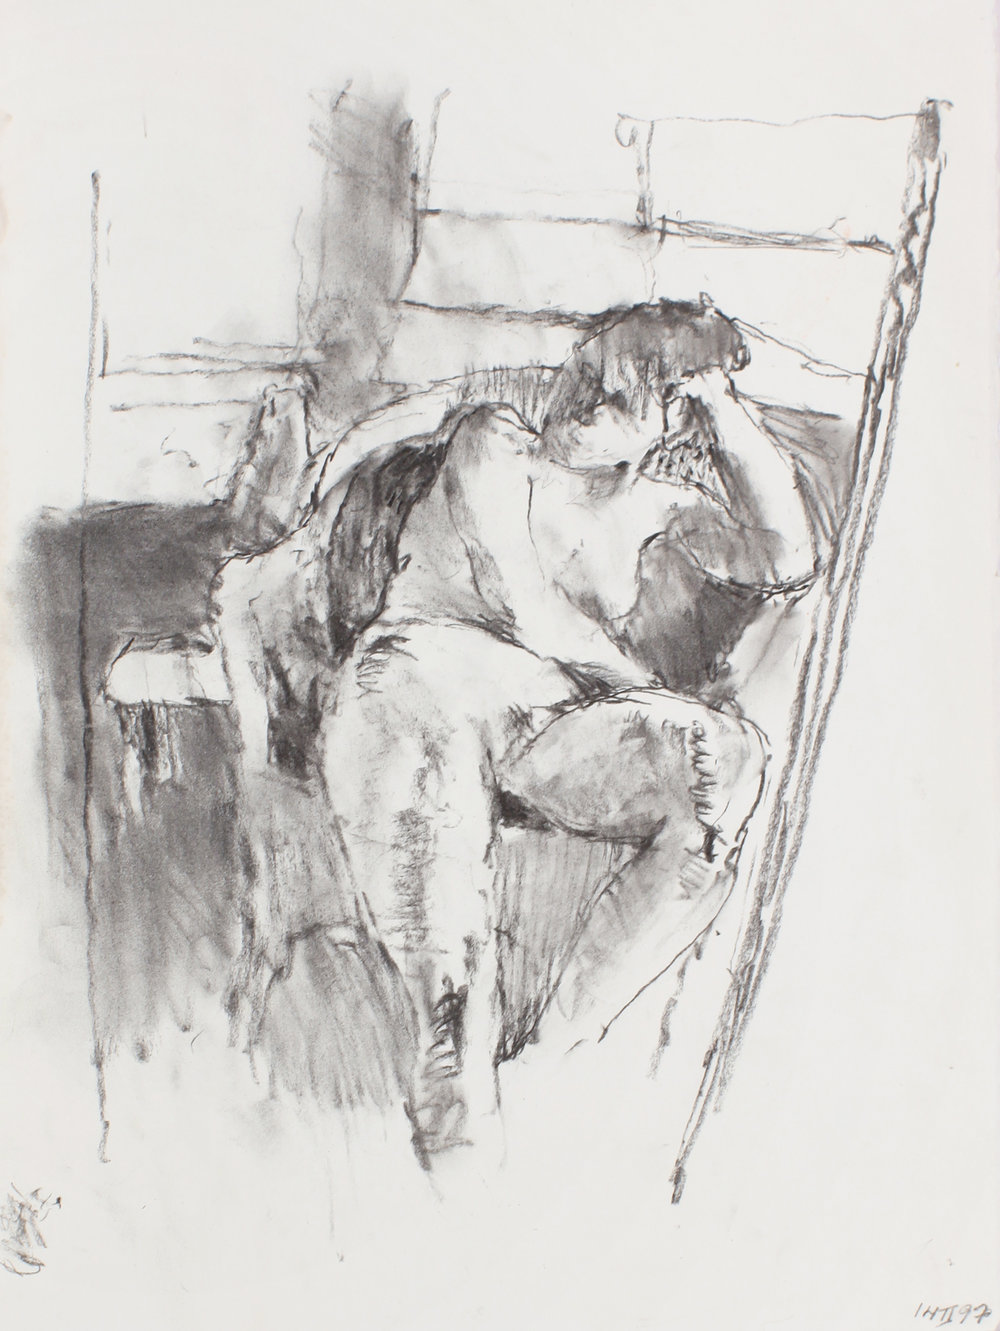 1997_Nude_in_Chair_(Seen_through_mirror)_charcoal_on_paper_15x11in_WPF517.jpg